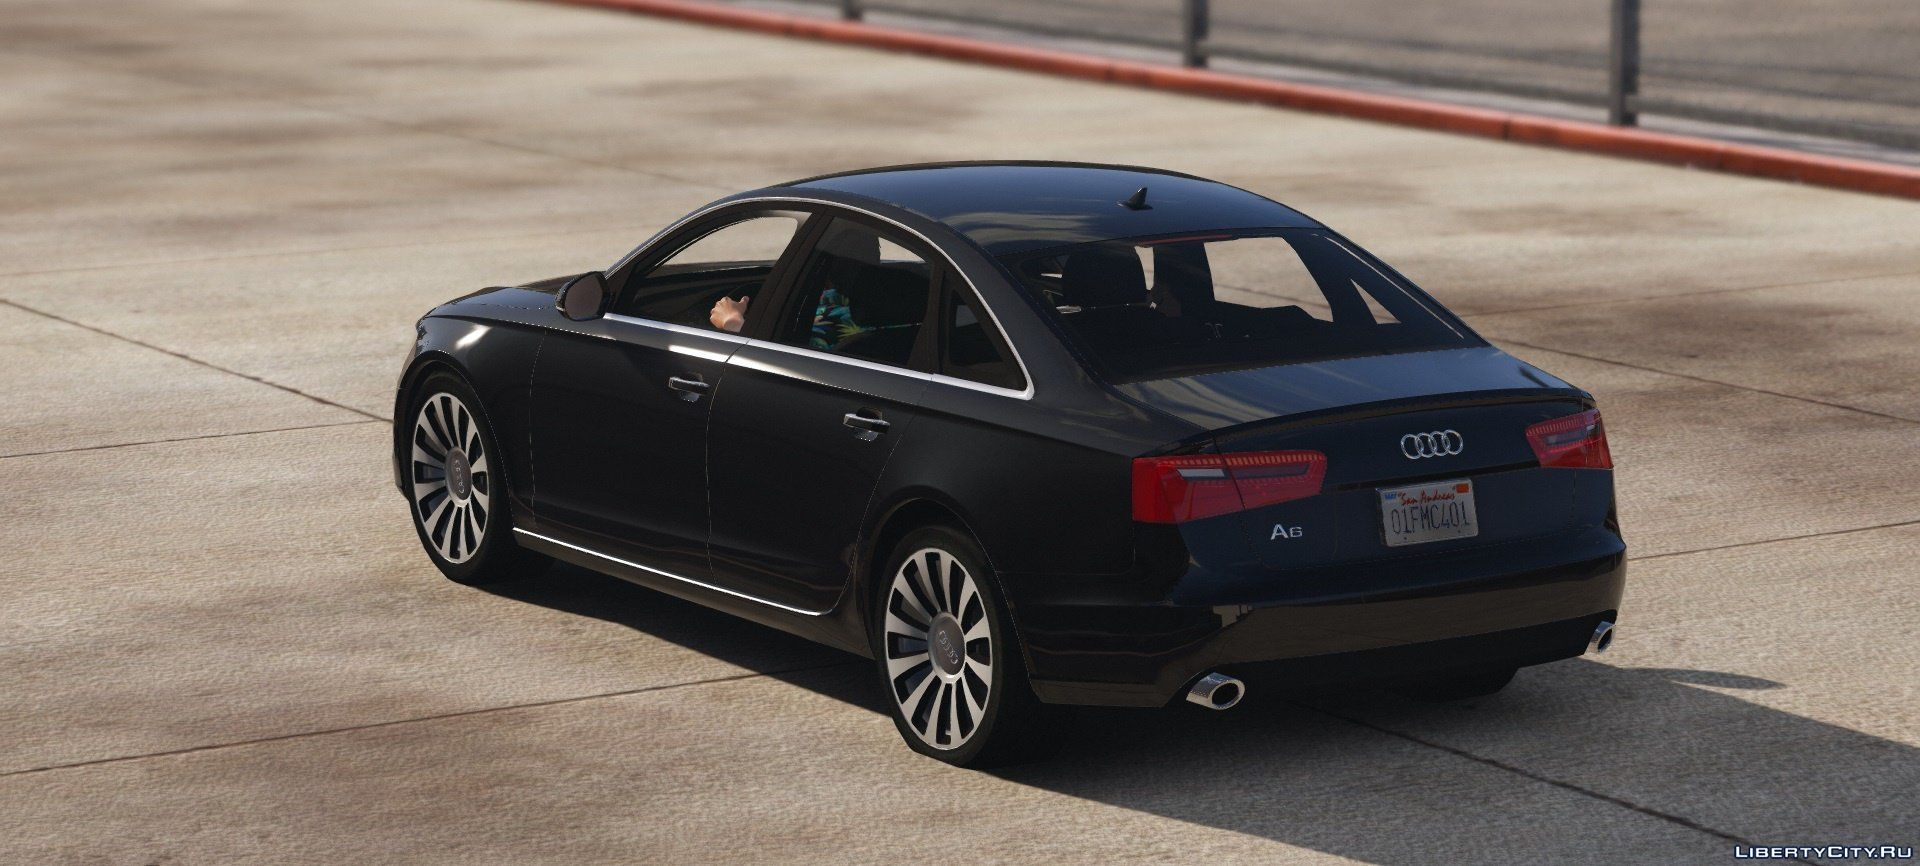 audi a6 c7 limousine 1 1 for gta 5. Black Bedroom Furniture Sets. Home Design Ideas